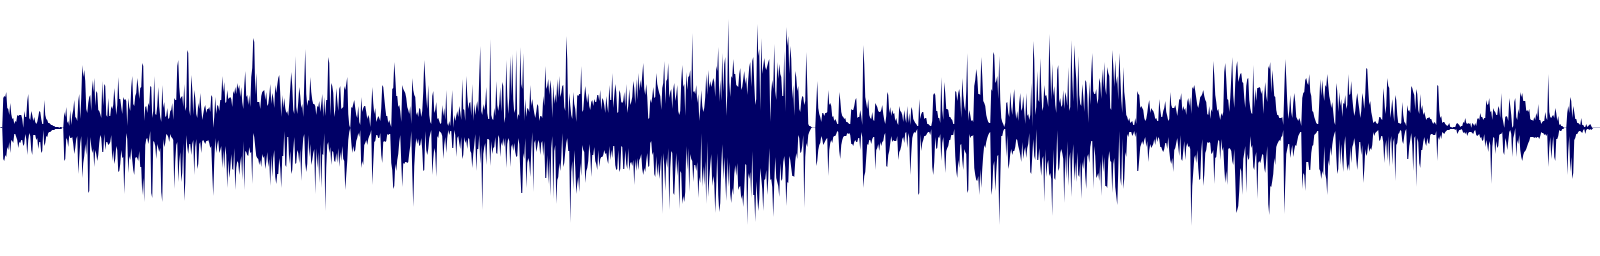 waveform of track #144259